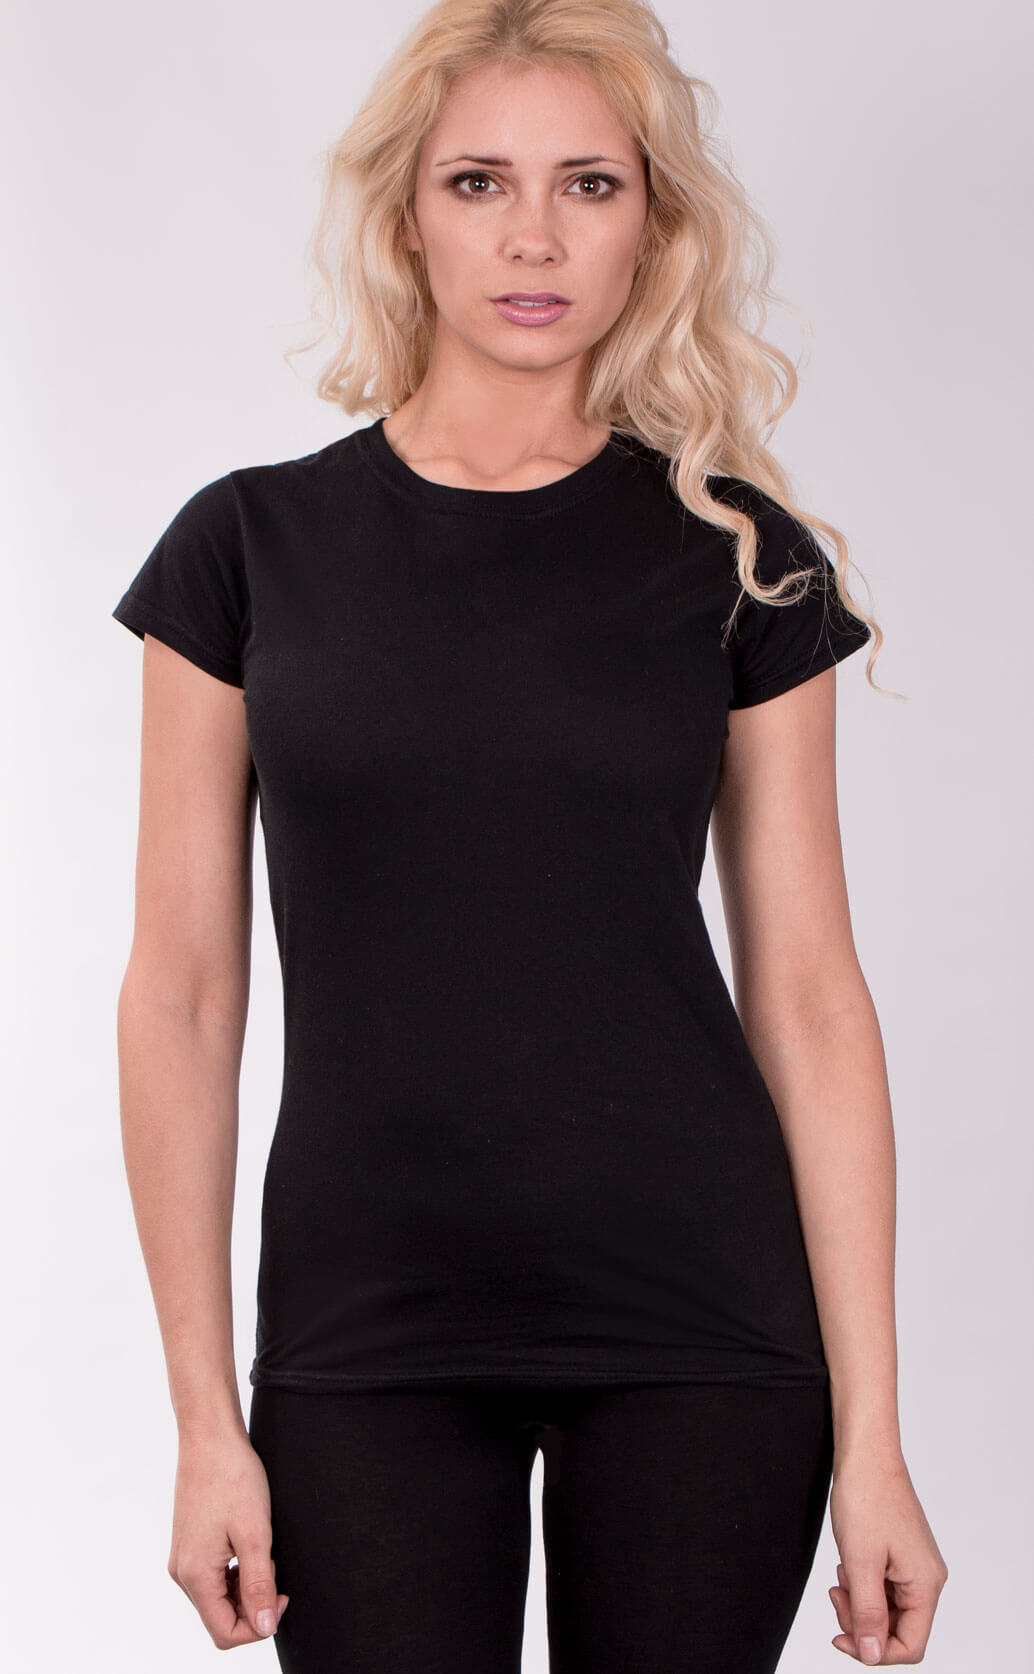 Size guide image for Lady Fit shirt type. Model is dressed in black